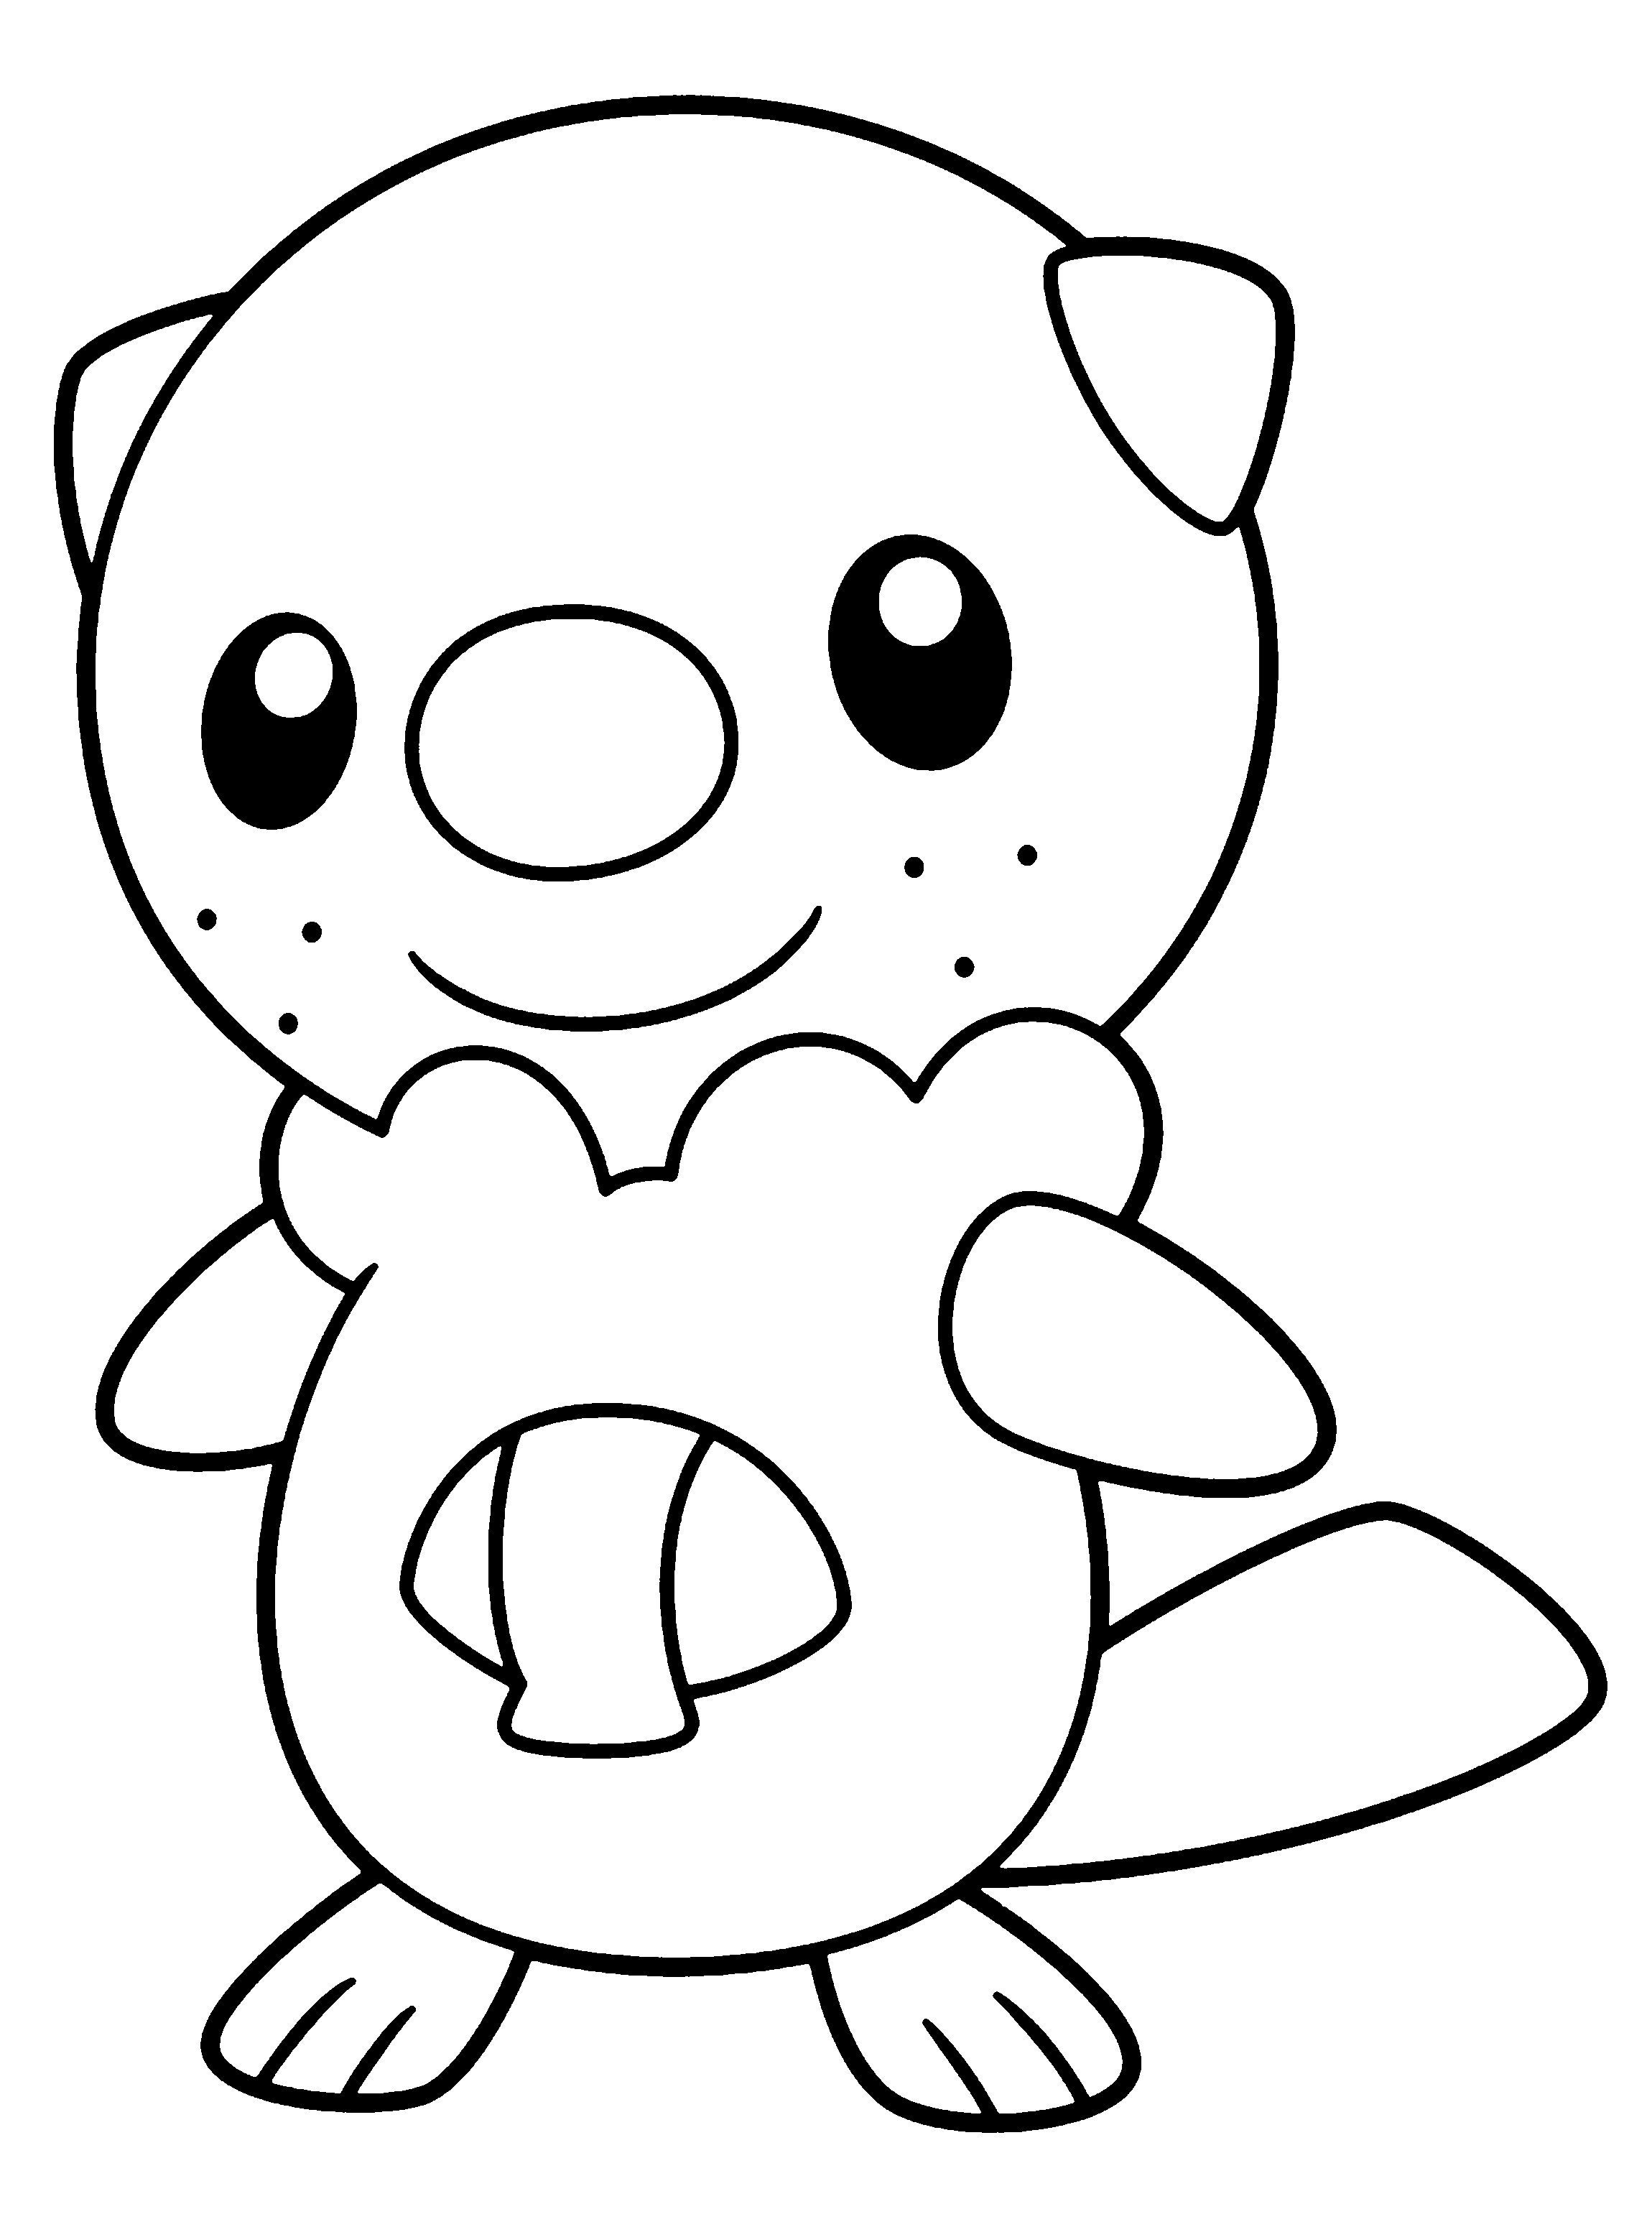 pokemon pictures from black and white pokemon black and white coloring pages of oshawott black and from pictures white pokemon